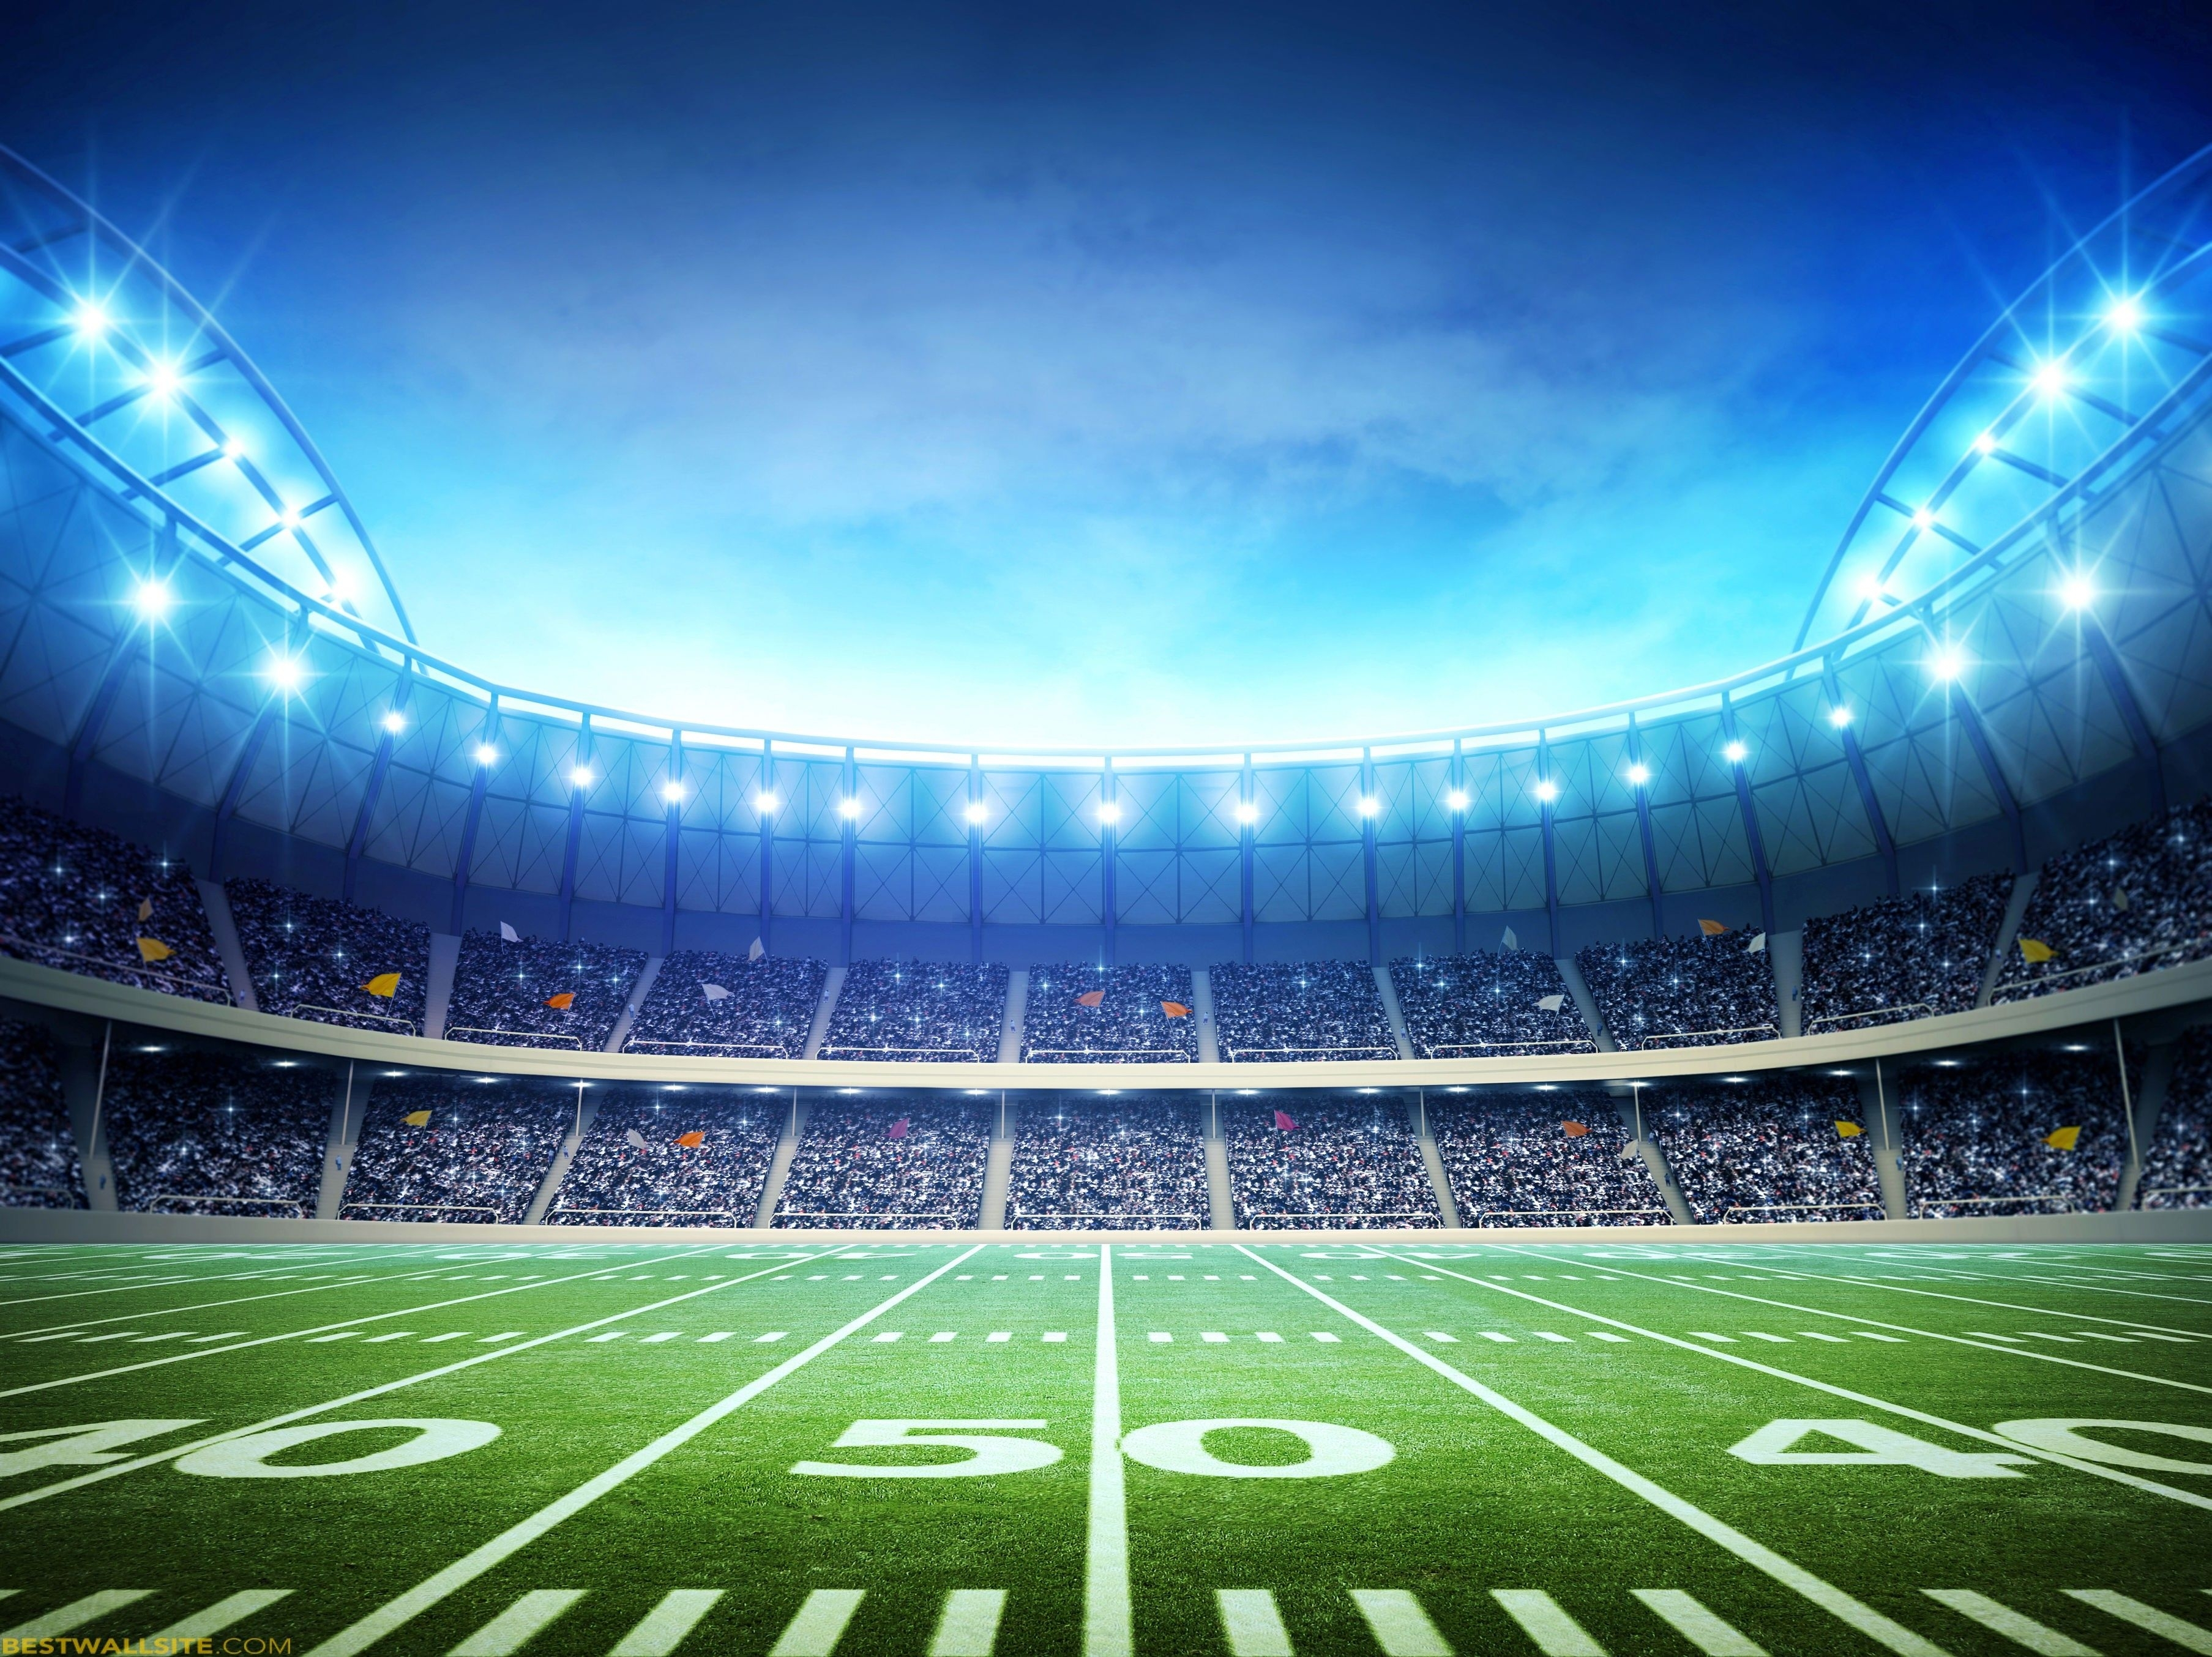 60 American Football Field Wallpapers: 10 Top American Football Field Backgrounds At Night FULL